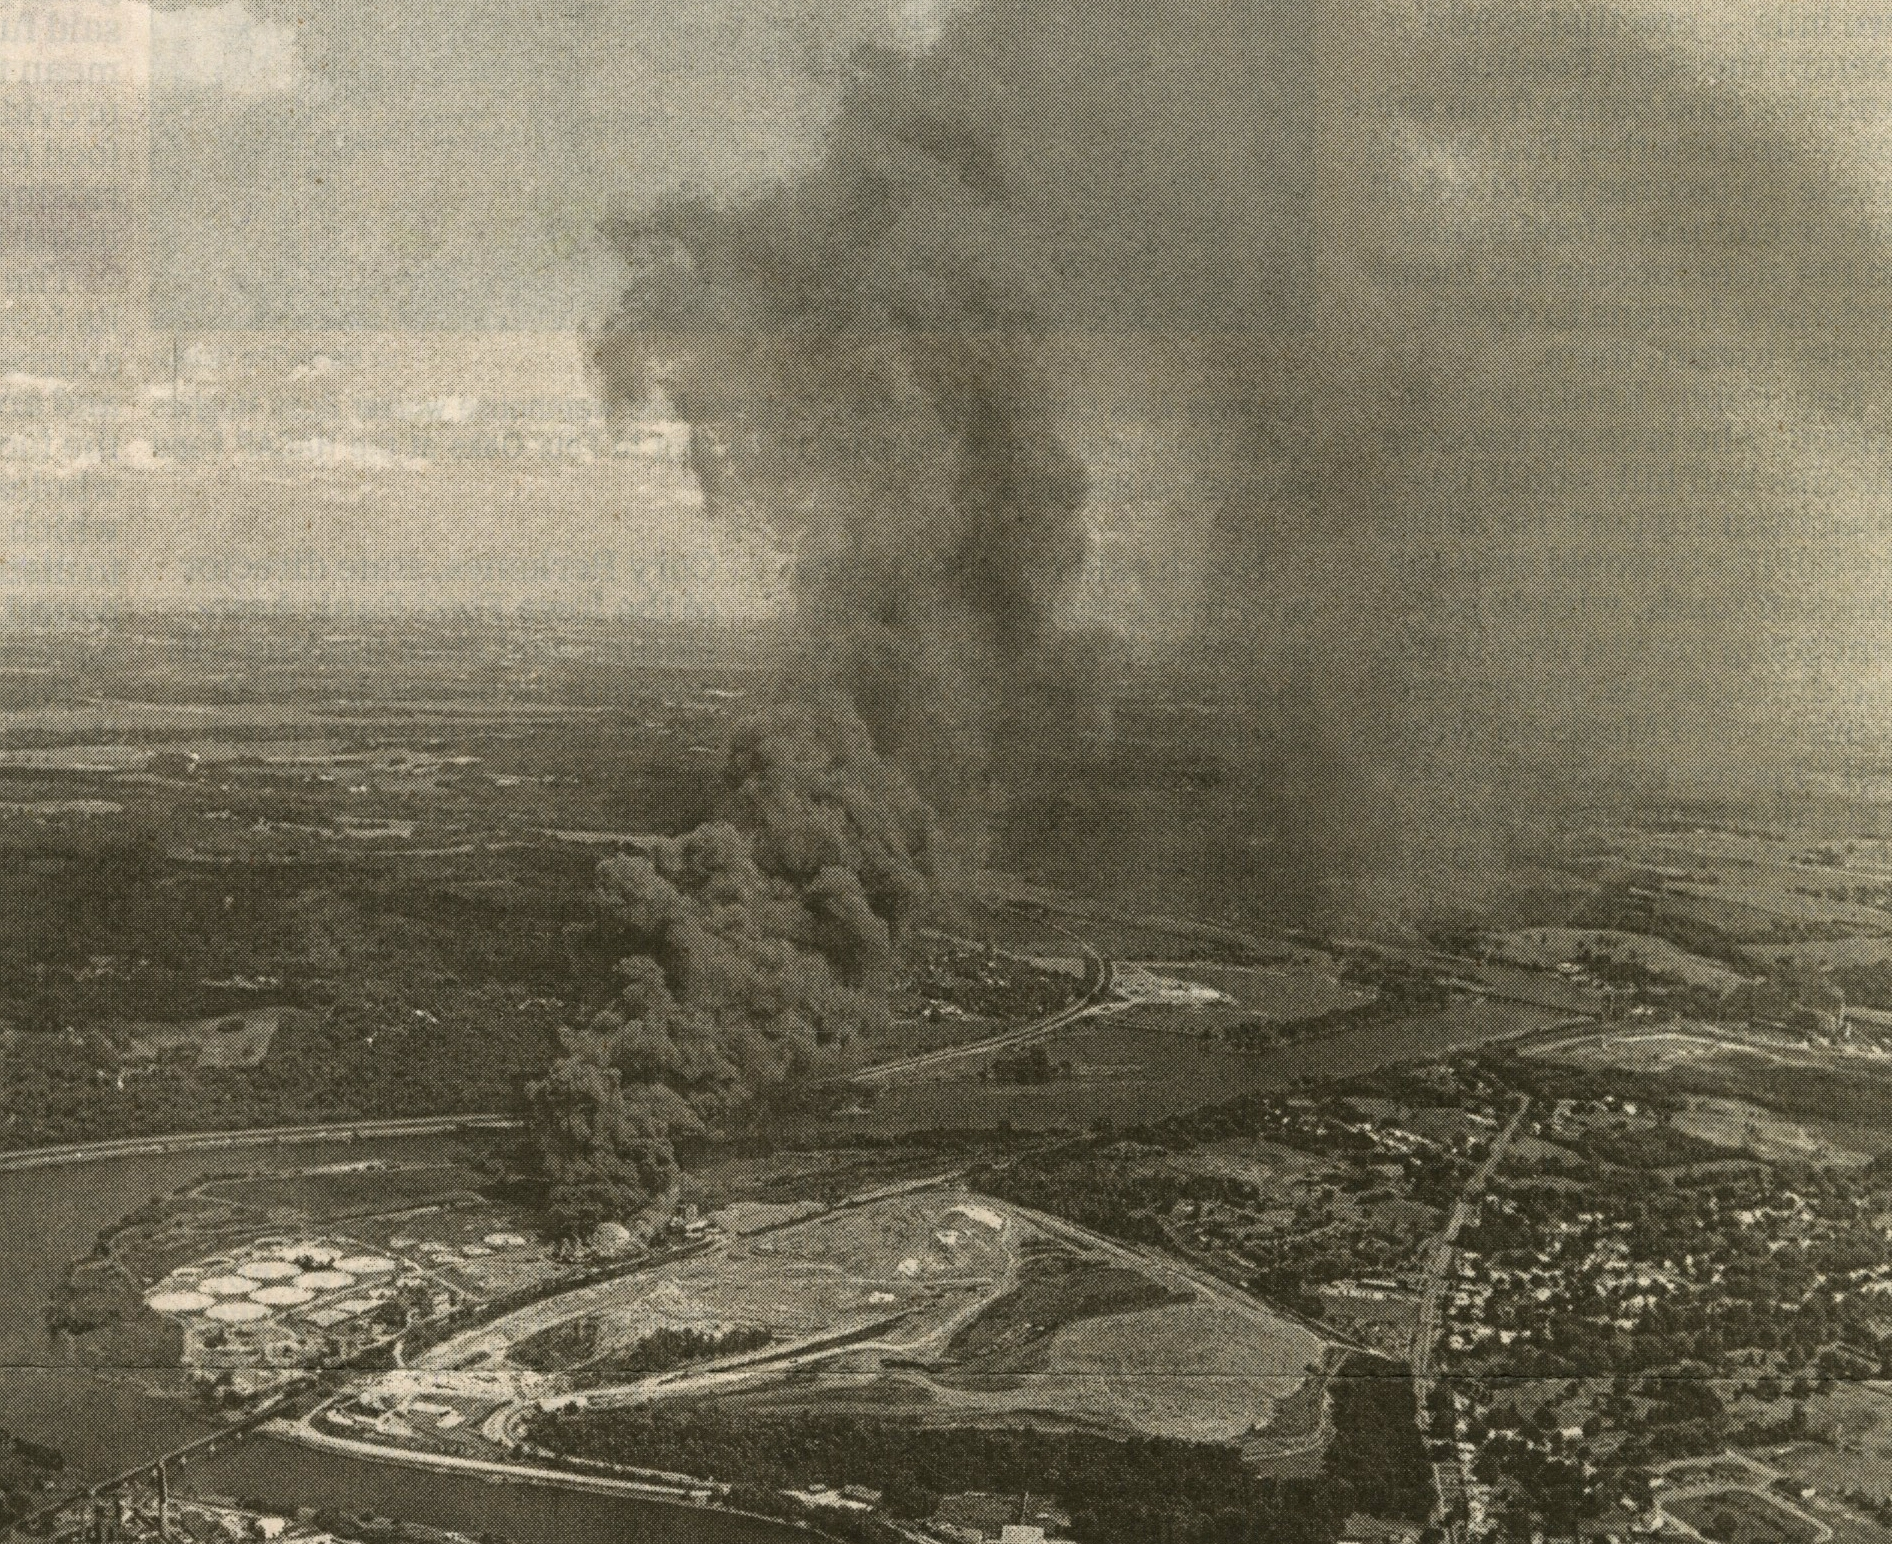 """On July 16, 1985, an explosion occurred during the dismantling of a sewage treatment plant in Cedar Rapids, Iowa. Local residents refer to this event as """"Toxic Tuesday.""""  Image: The Cedar Rapids Gazette ."""